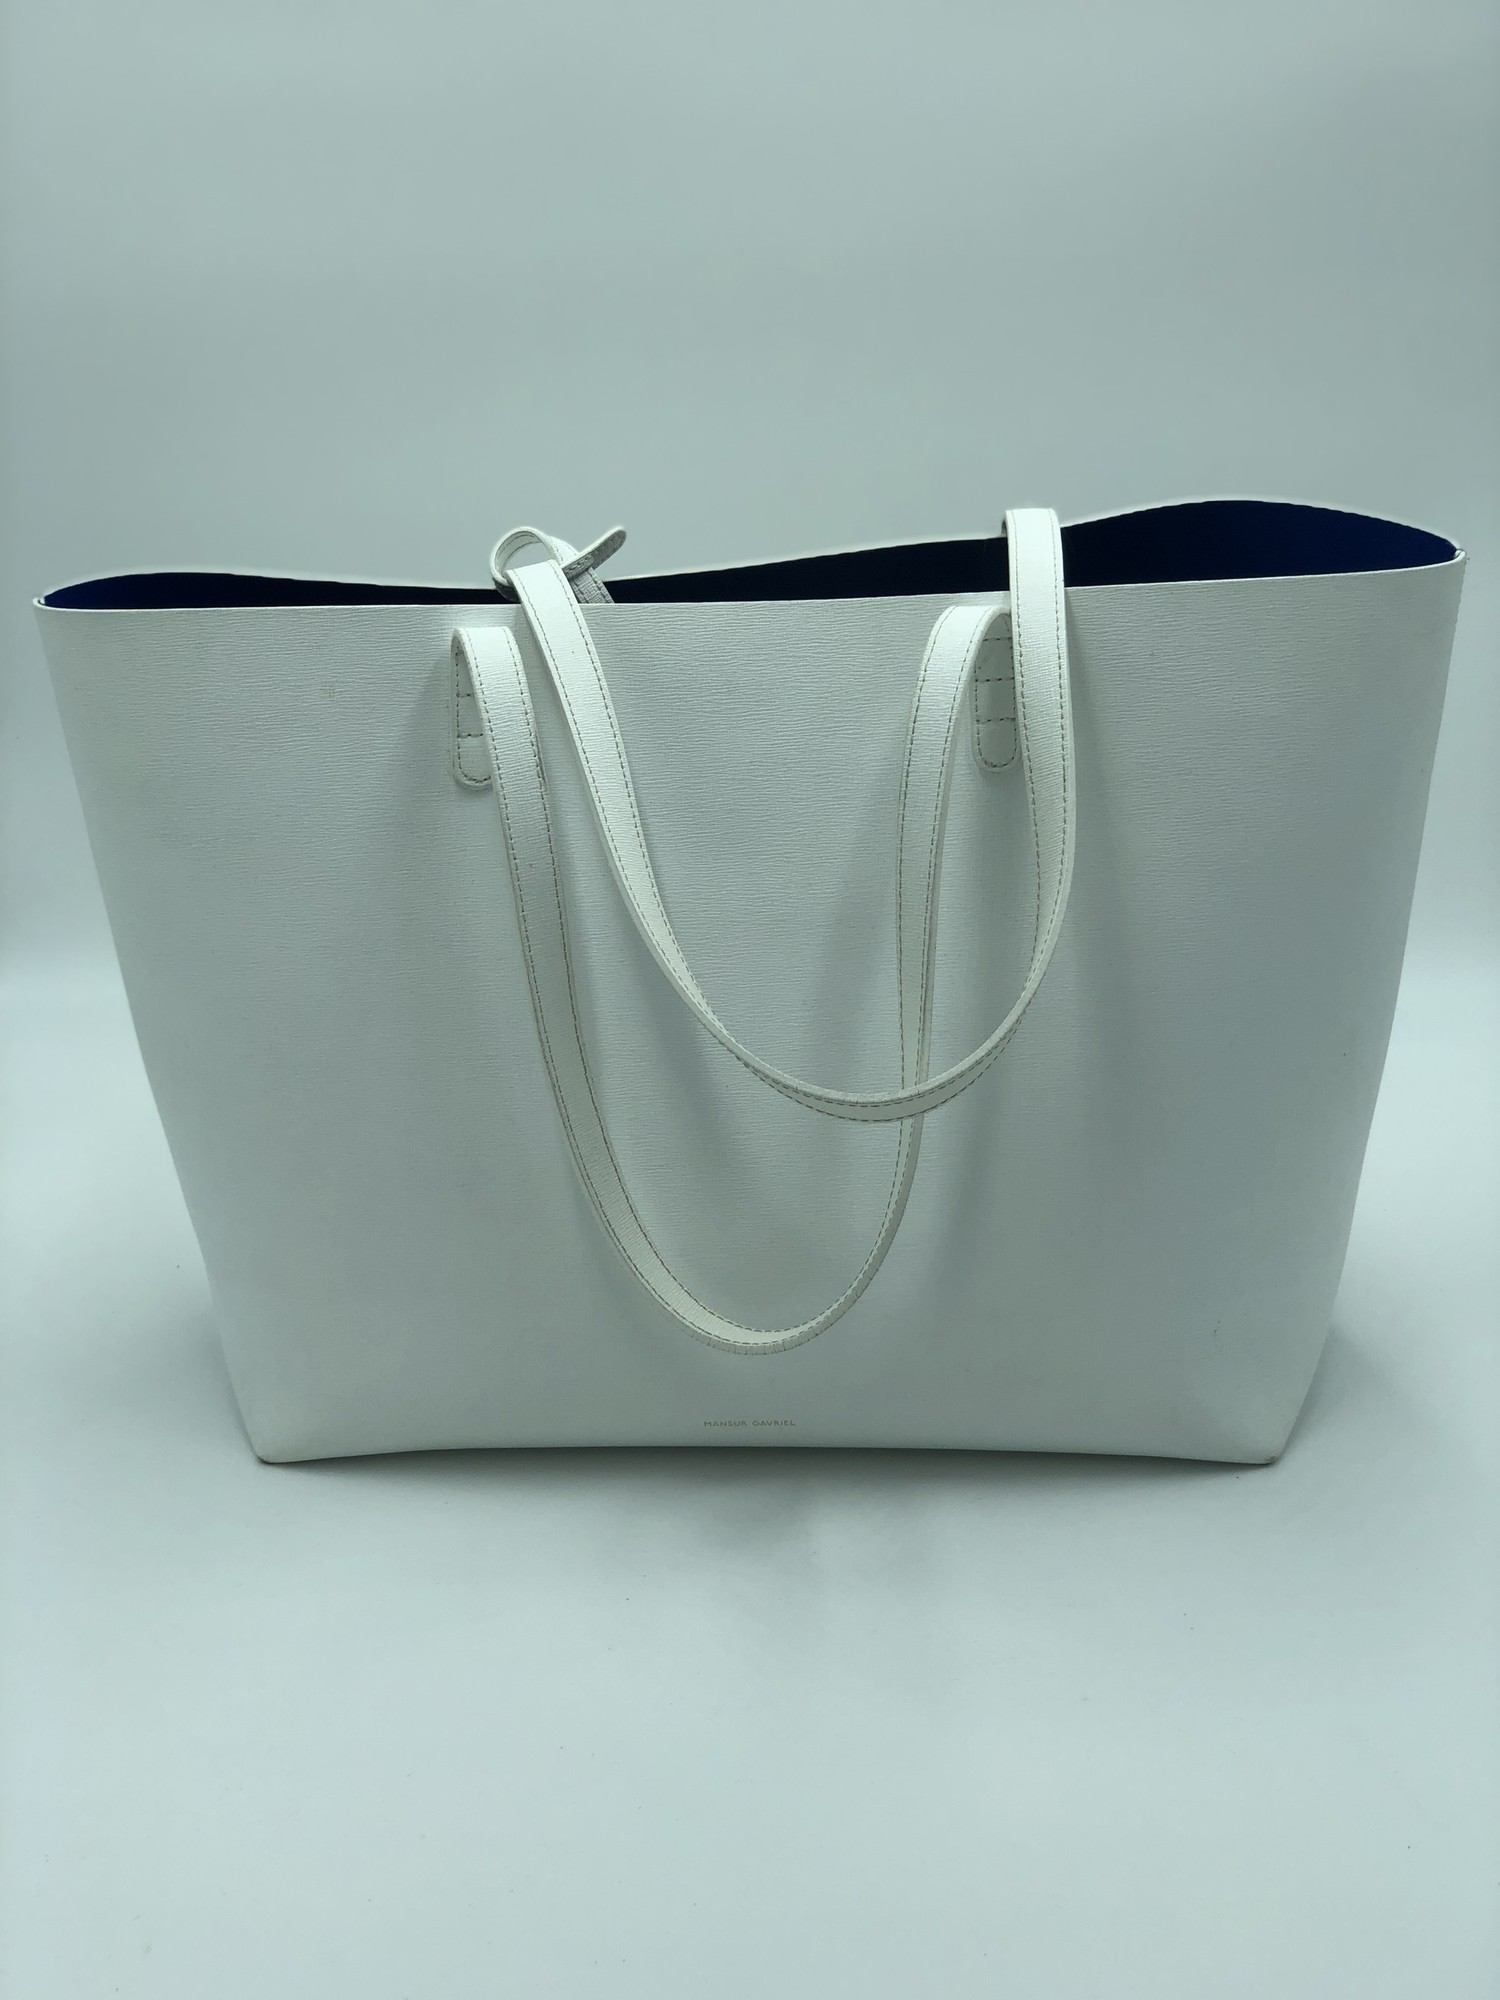 "Mansur Gavriel Tote, White, Size: L<br /> <br /> Condition: GOOD. Normal wear on bottom seams<br /> <br /> 11.5"" H × 19.5""W × 6""D<br /> <br /> Original Retail: $615<br /> <br /> We guarantee the authenticity of every bag on our site. Each bag comes with either an original sales receipt or a Certificate of Authenticity from AuthenticateFirst.com. Established in 2013, AuthenticateFirst.com<br /> (http://authenticatefirst.com) is one of the premier authentication services in the US, providing authentications of designer handbags, wallets, small leather goods, footwear, jewelry, and accessories. They employee in-house experts who have decades of experience working with hundreds of luxury brands."